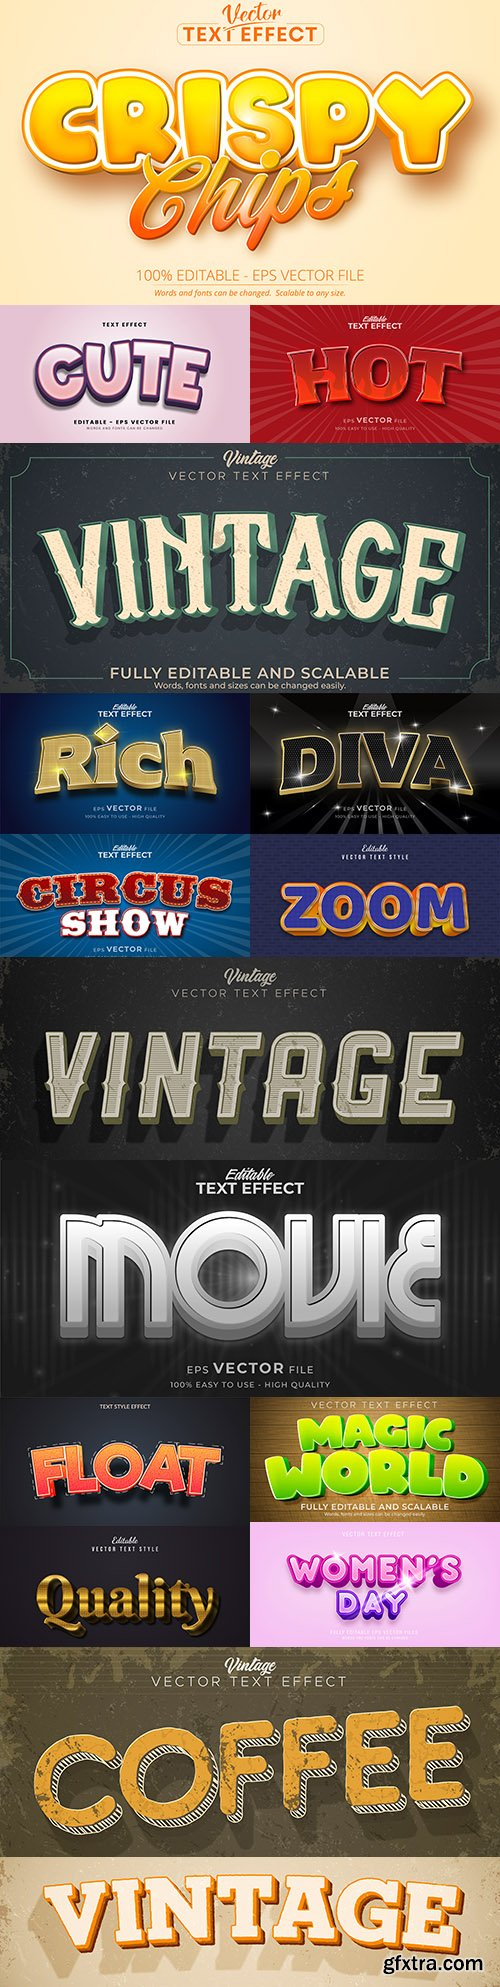 Editable font and 3d effect text design collection illustration 33